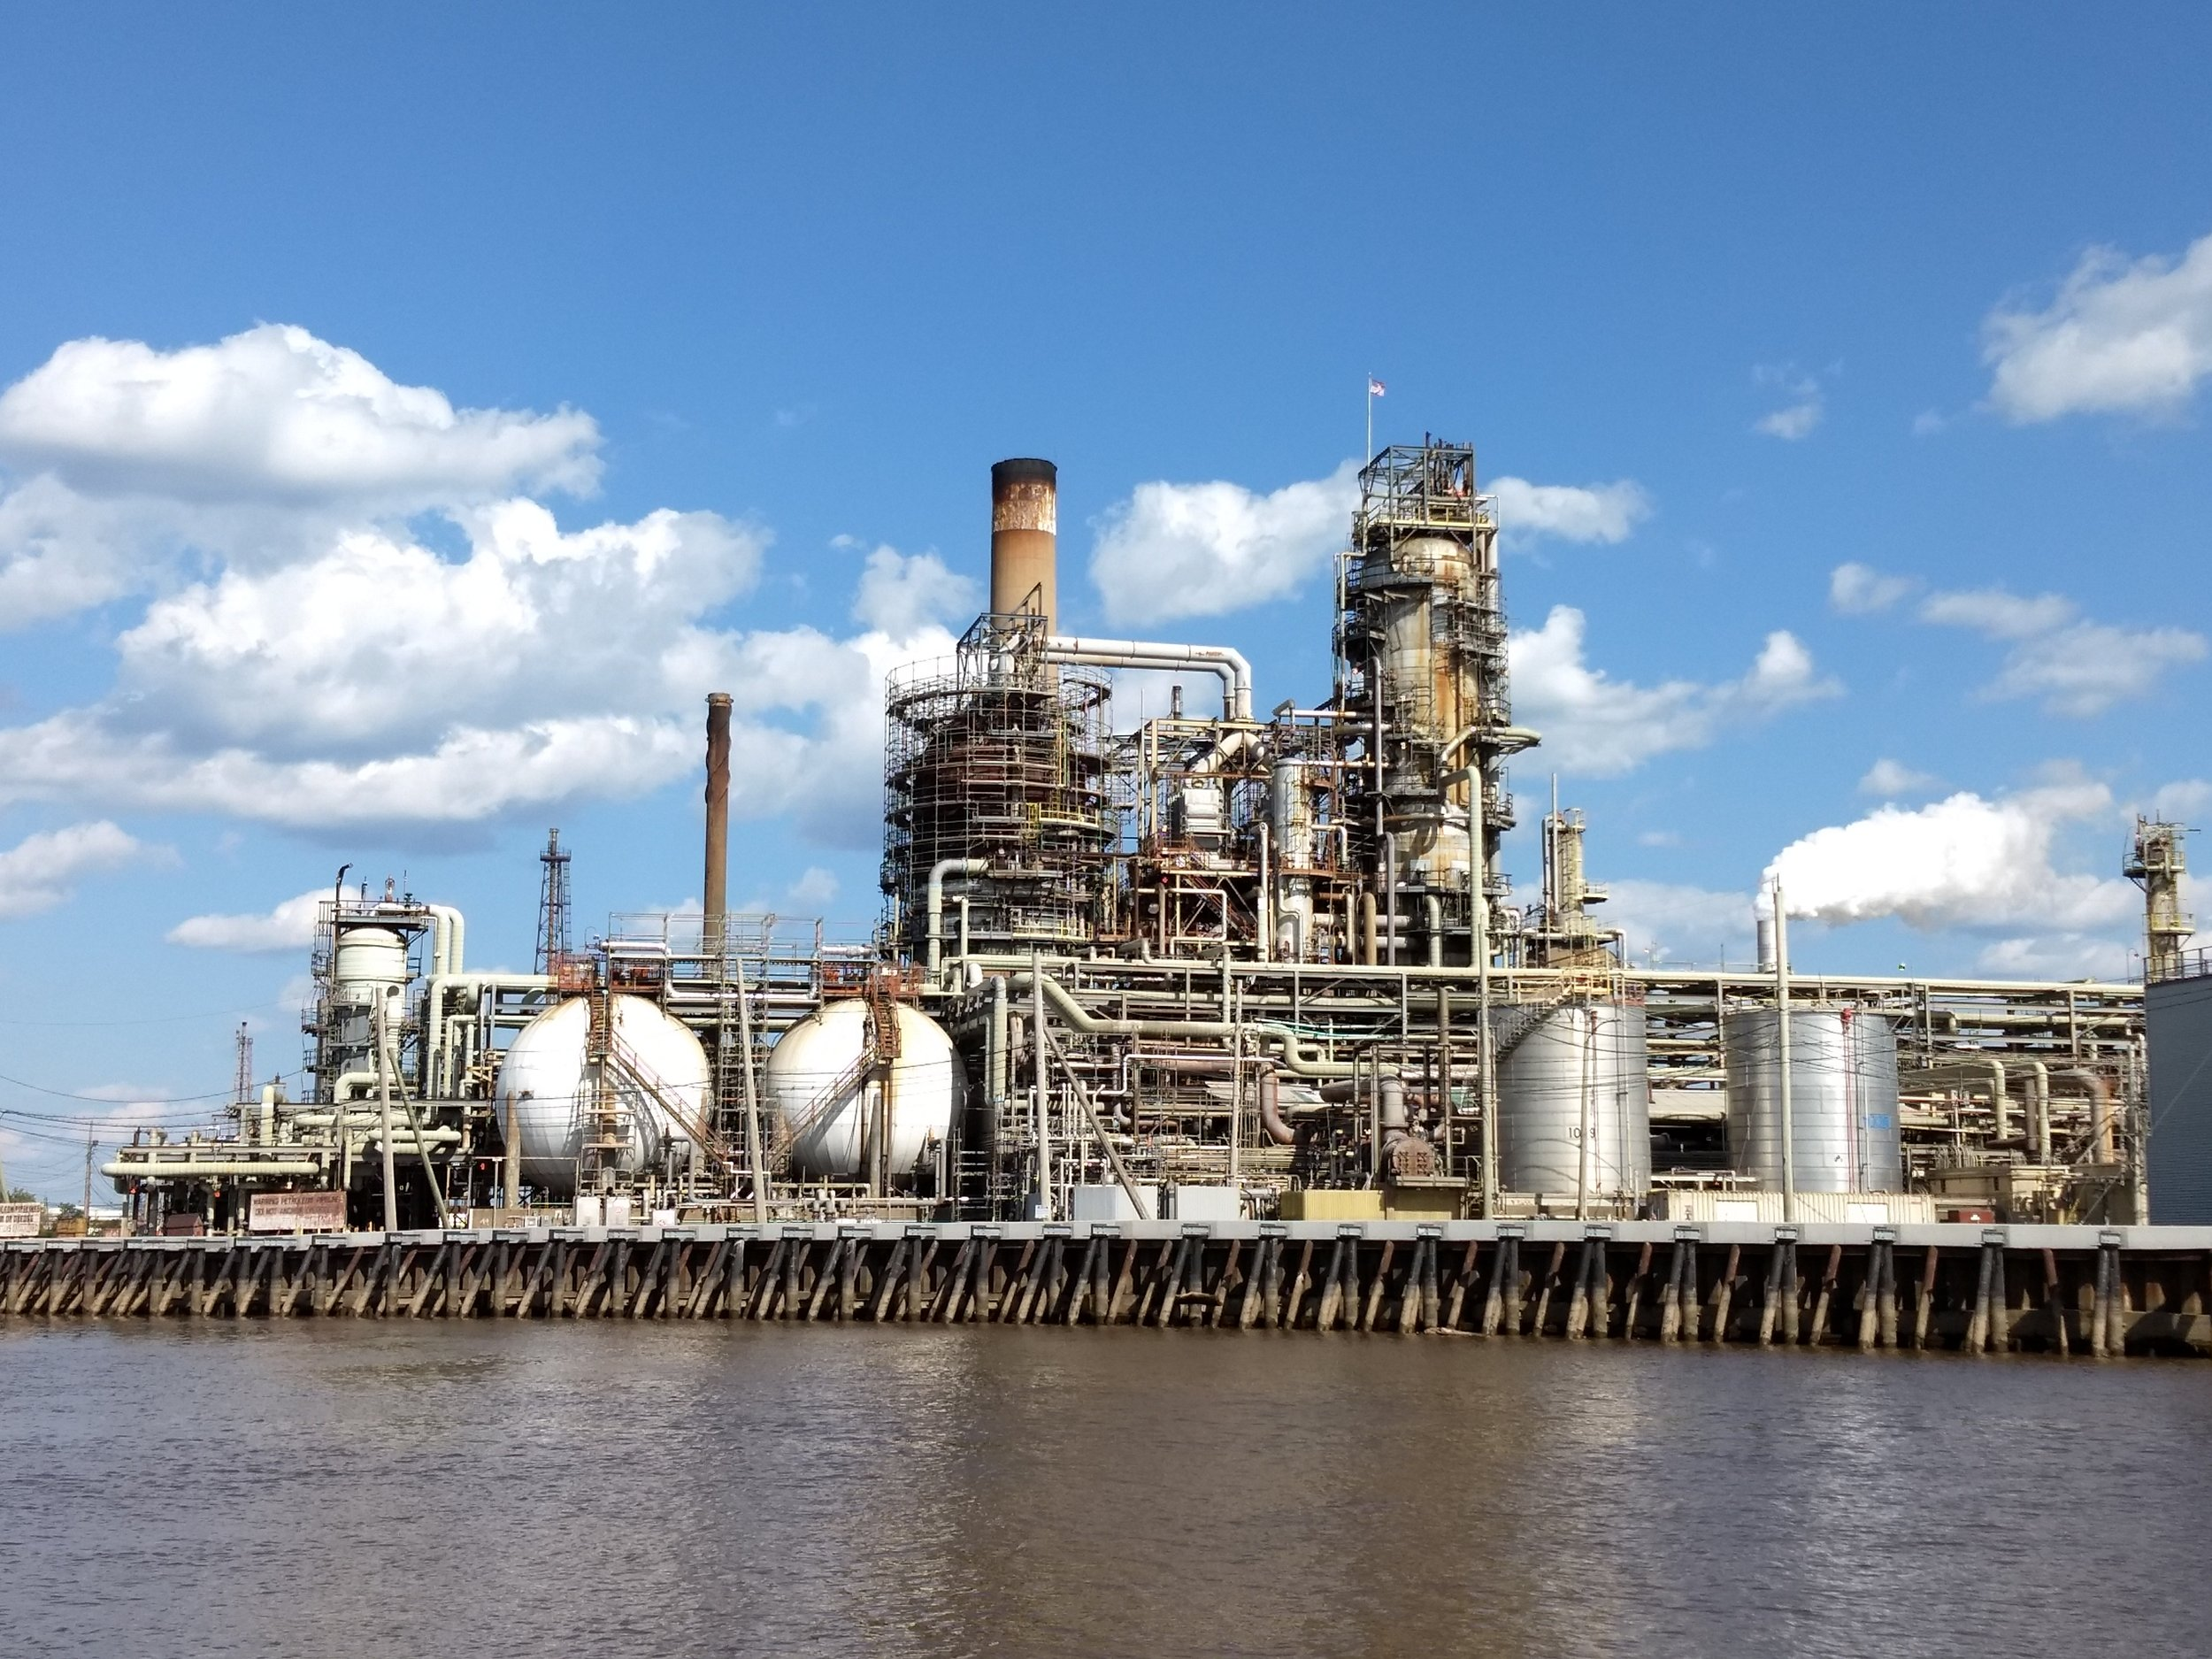 One of the many Philadelphia oil refineries